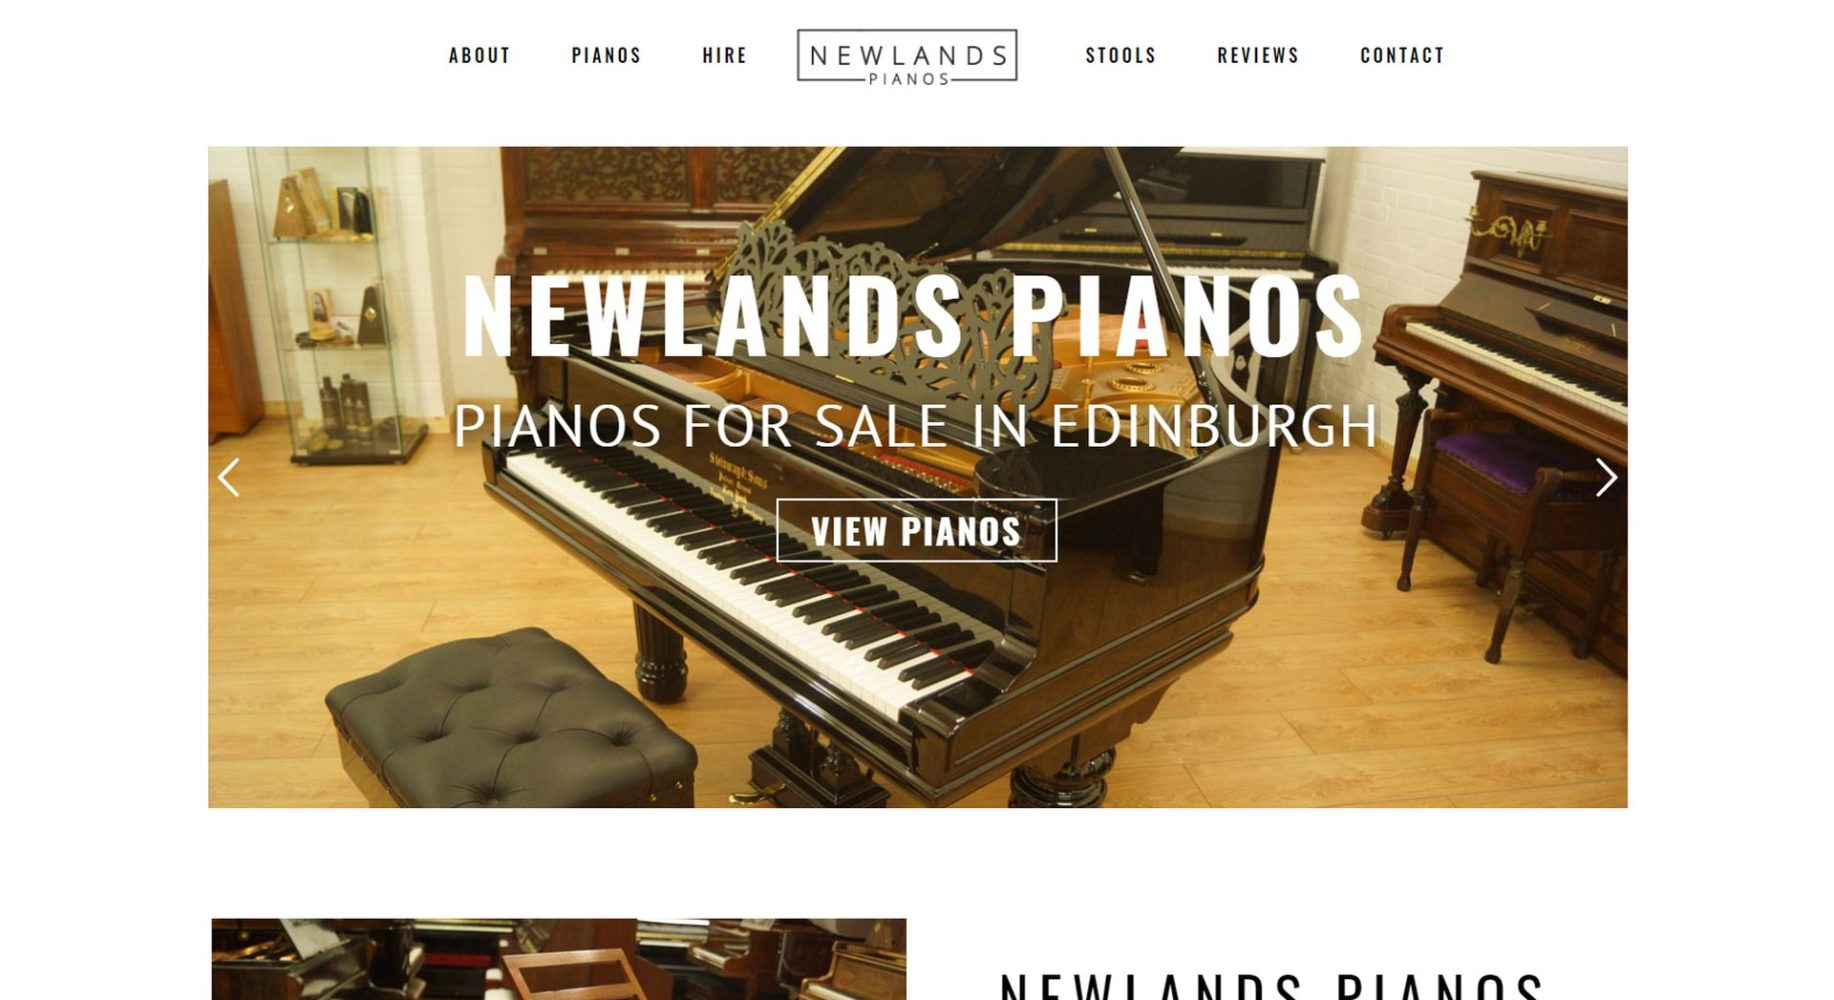 Newlands Pianos Website Design Homepage